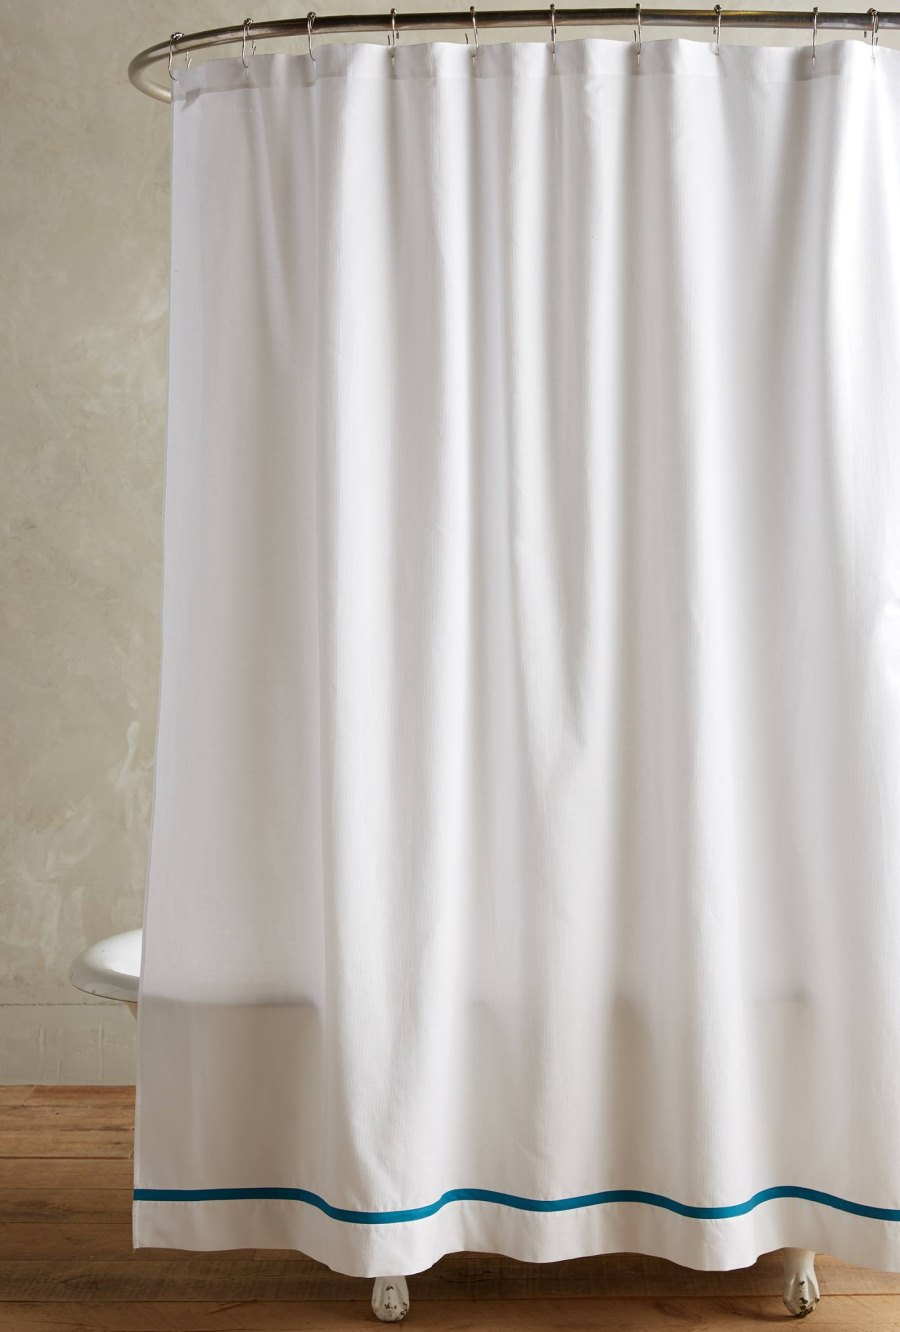 valances in luxury shower bathroom remodel curtains and with home curtain ideas